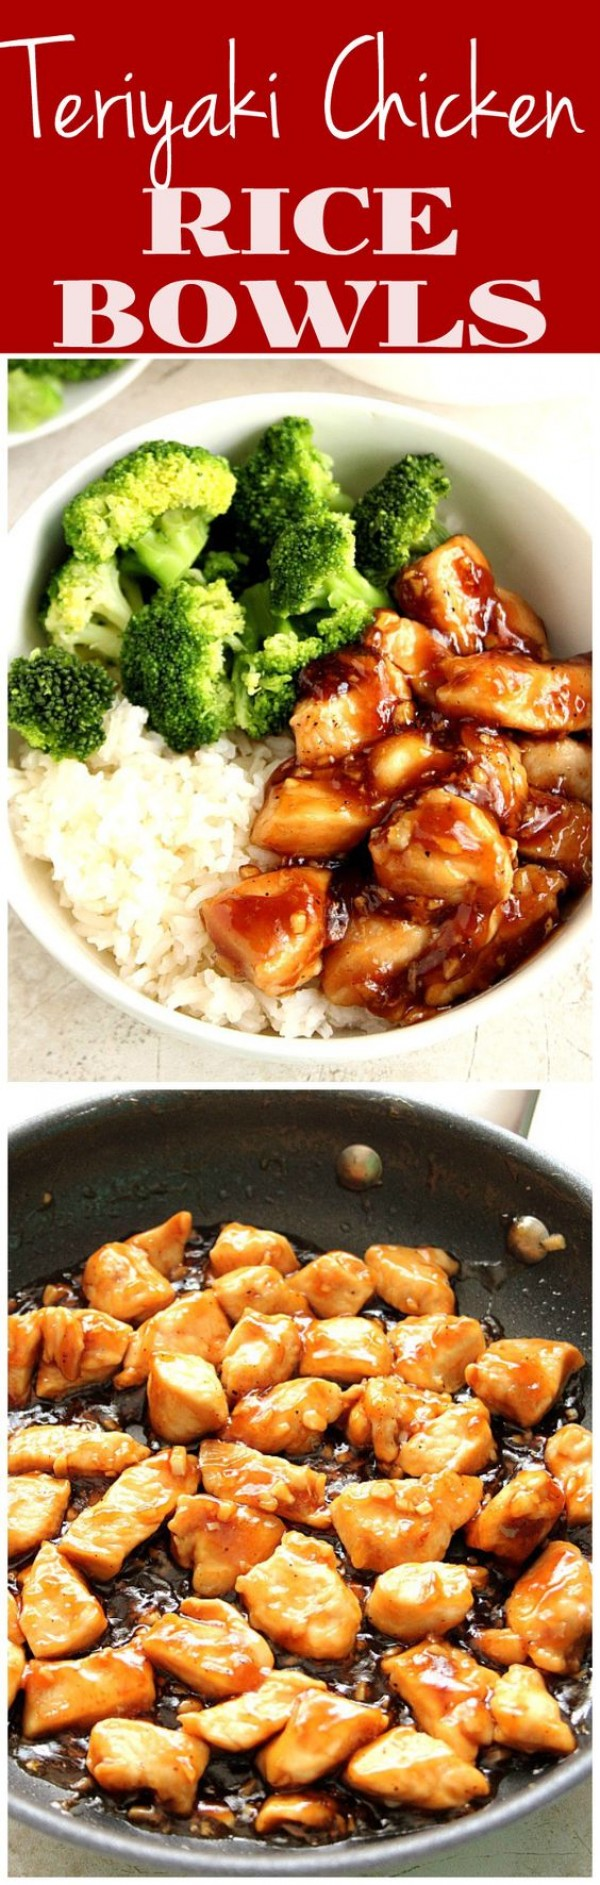 20 Unforgettable Chicken Recipes for a Romantic Dinner for Two - Get the recipe Teriyaki Chicken Rice Bowls @recipes_to_go